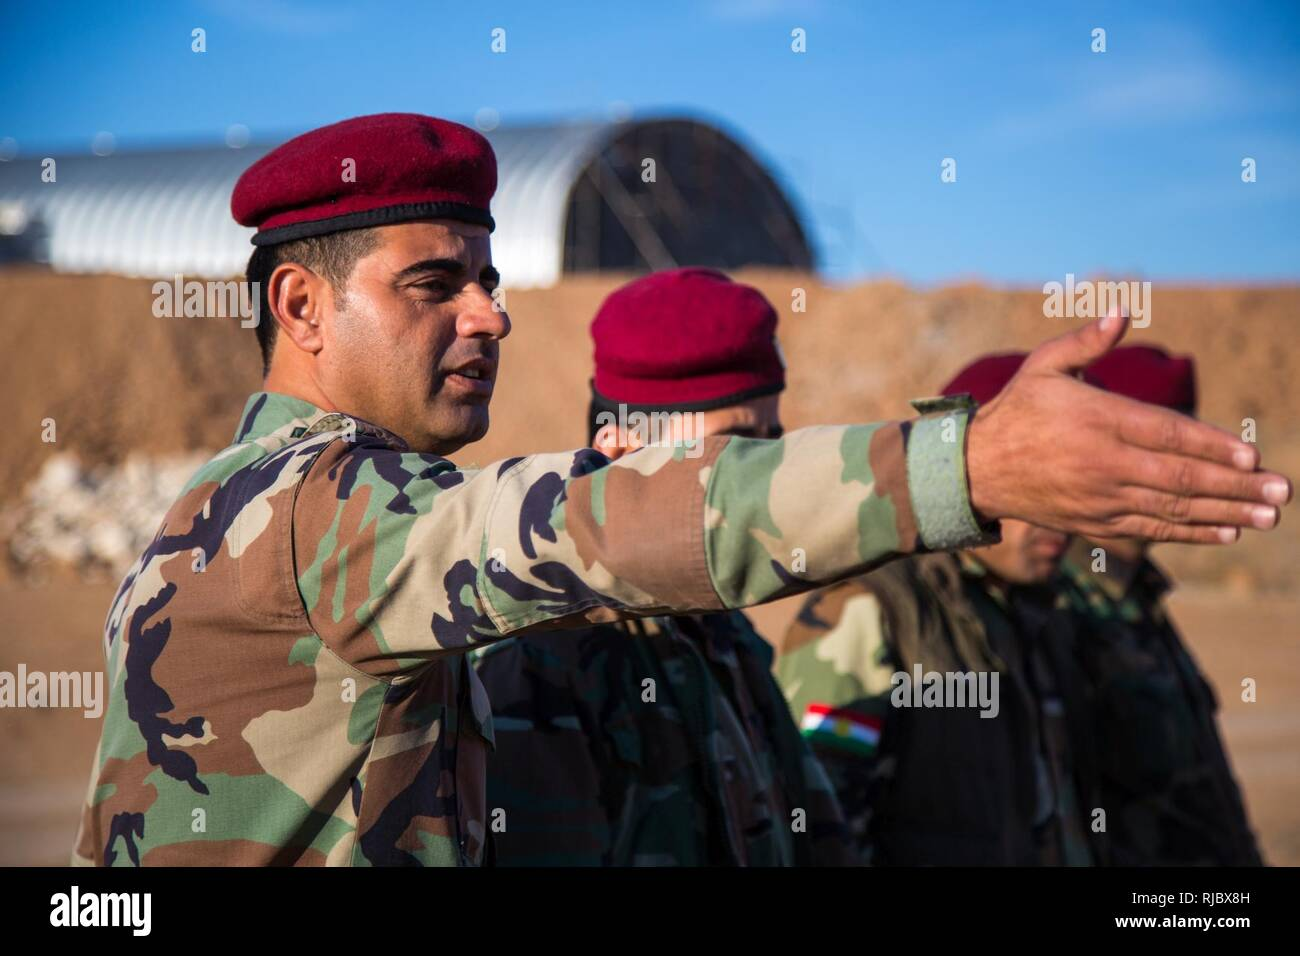 A coalition partner force member gestures towards his teammates during a counter improvised explosive device warm-up exercise at Erbil, Iraq, Jan. 10, 2018. This training is critical to enabling local security forces to secure their homeland from ISIS. CJTF-OIR is the global Coalition to defeat ISIS in Iraq and Syria. - Stock Image